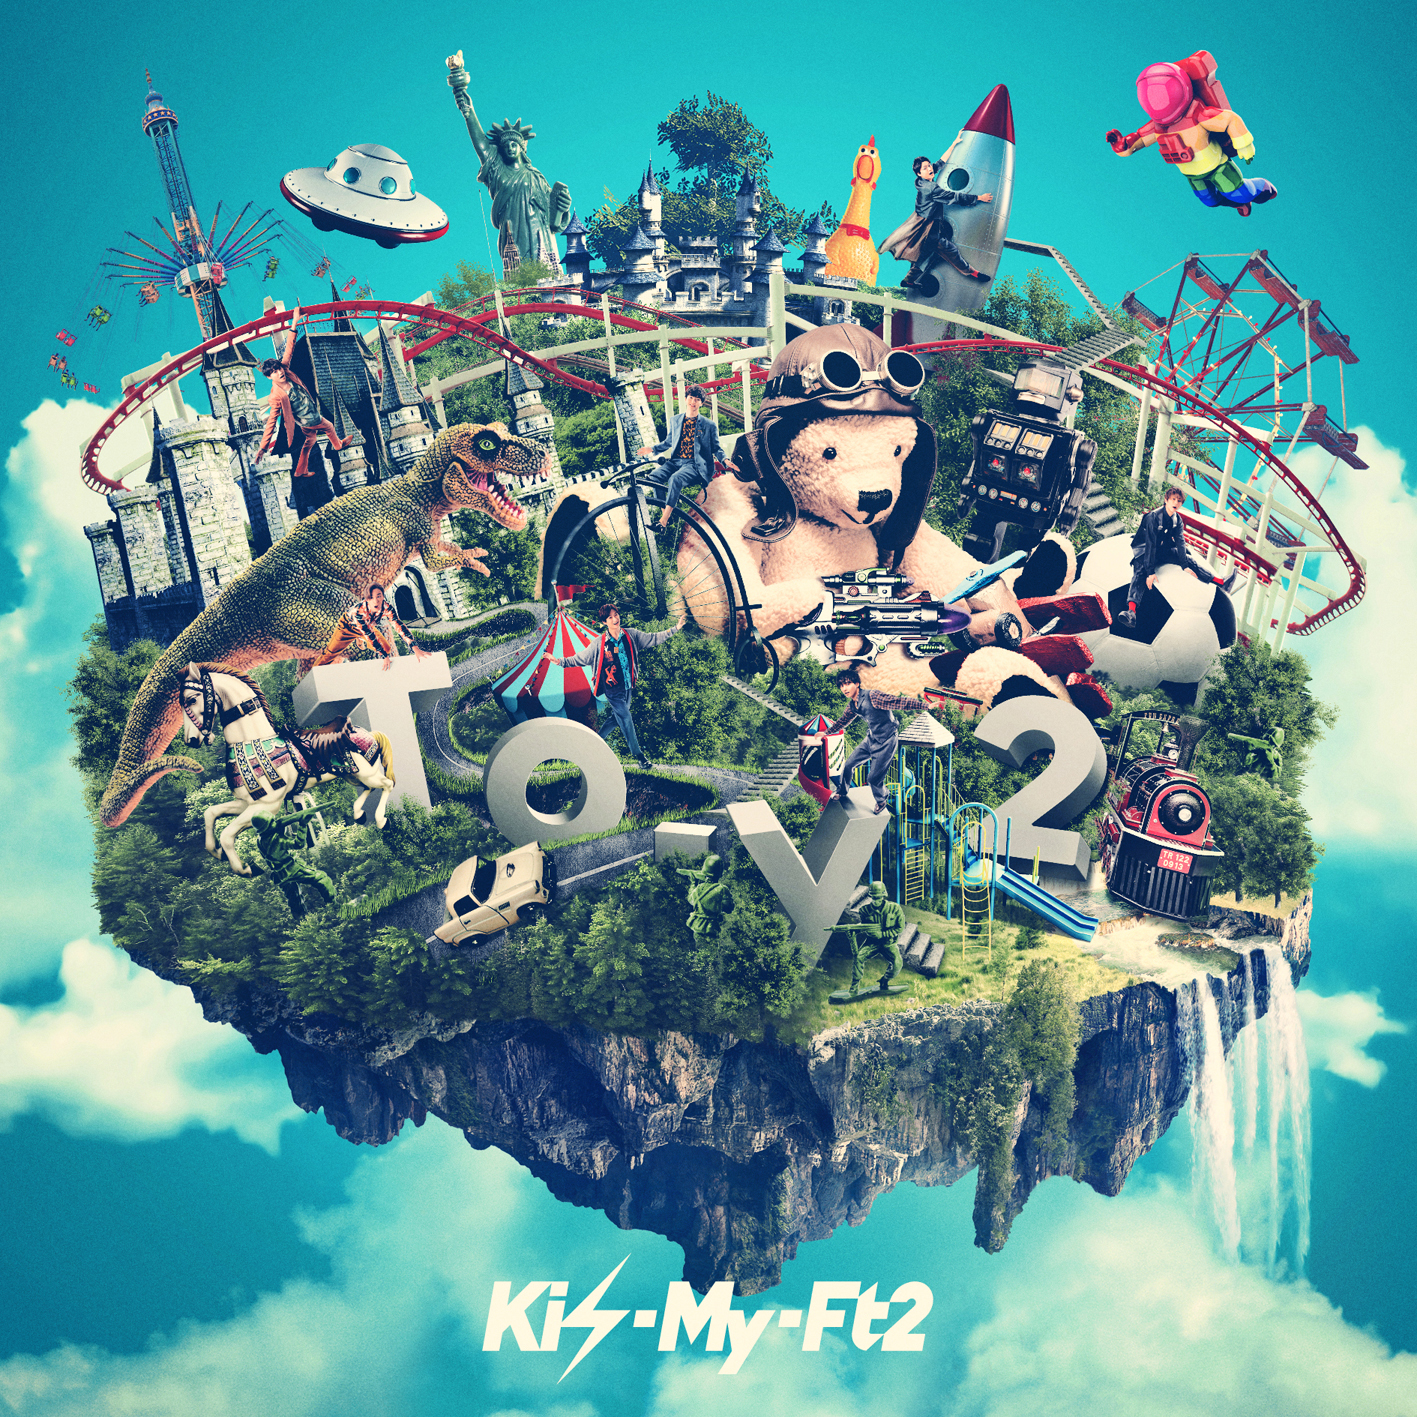 Kis-My-Ft2 アルバム『To-y2』 初回盤Aジャケット